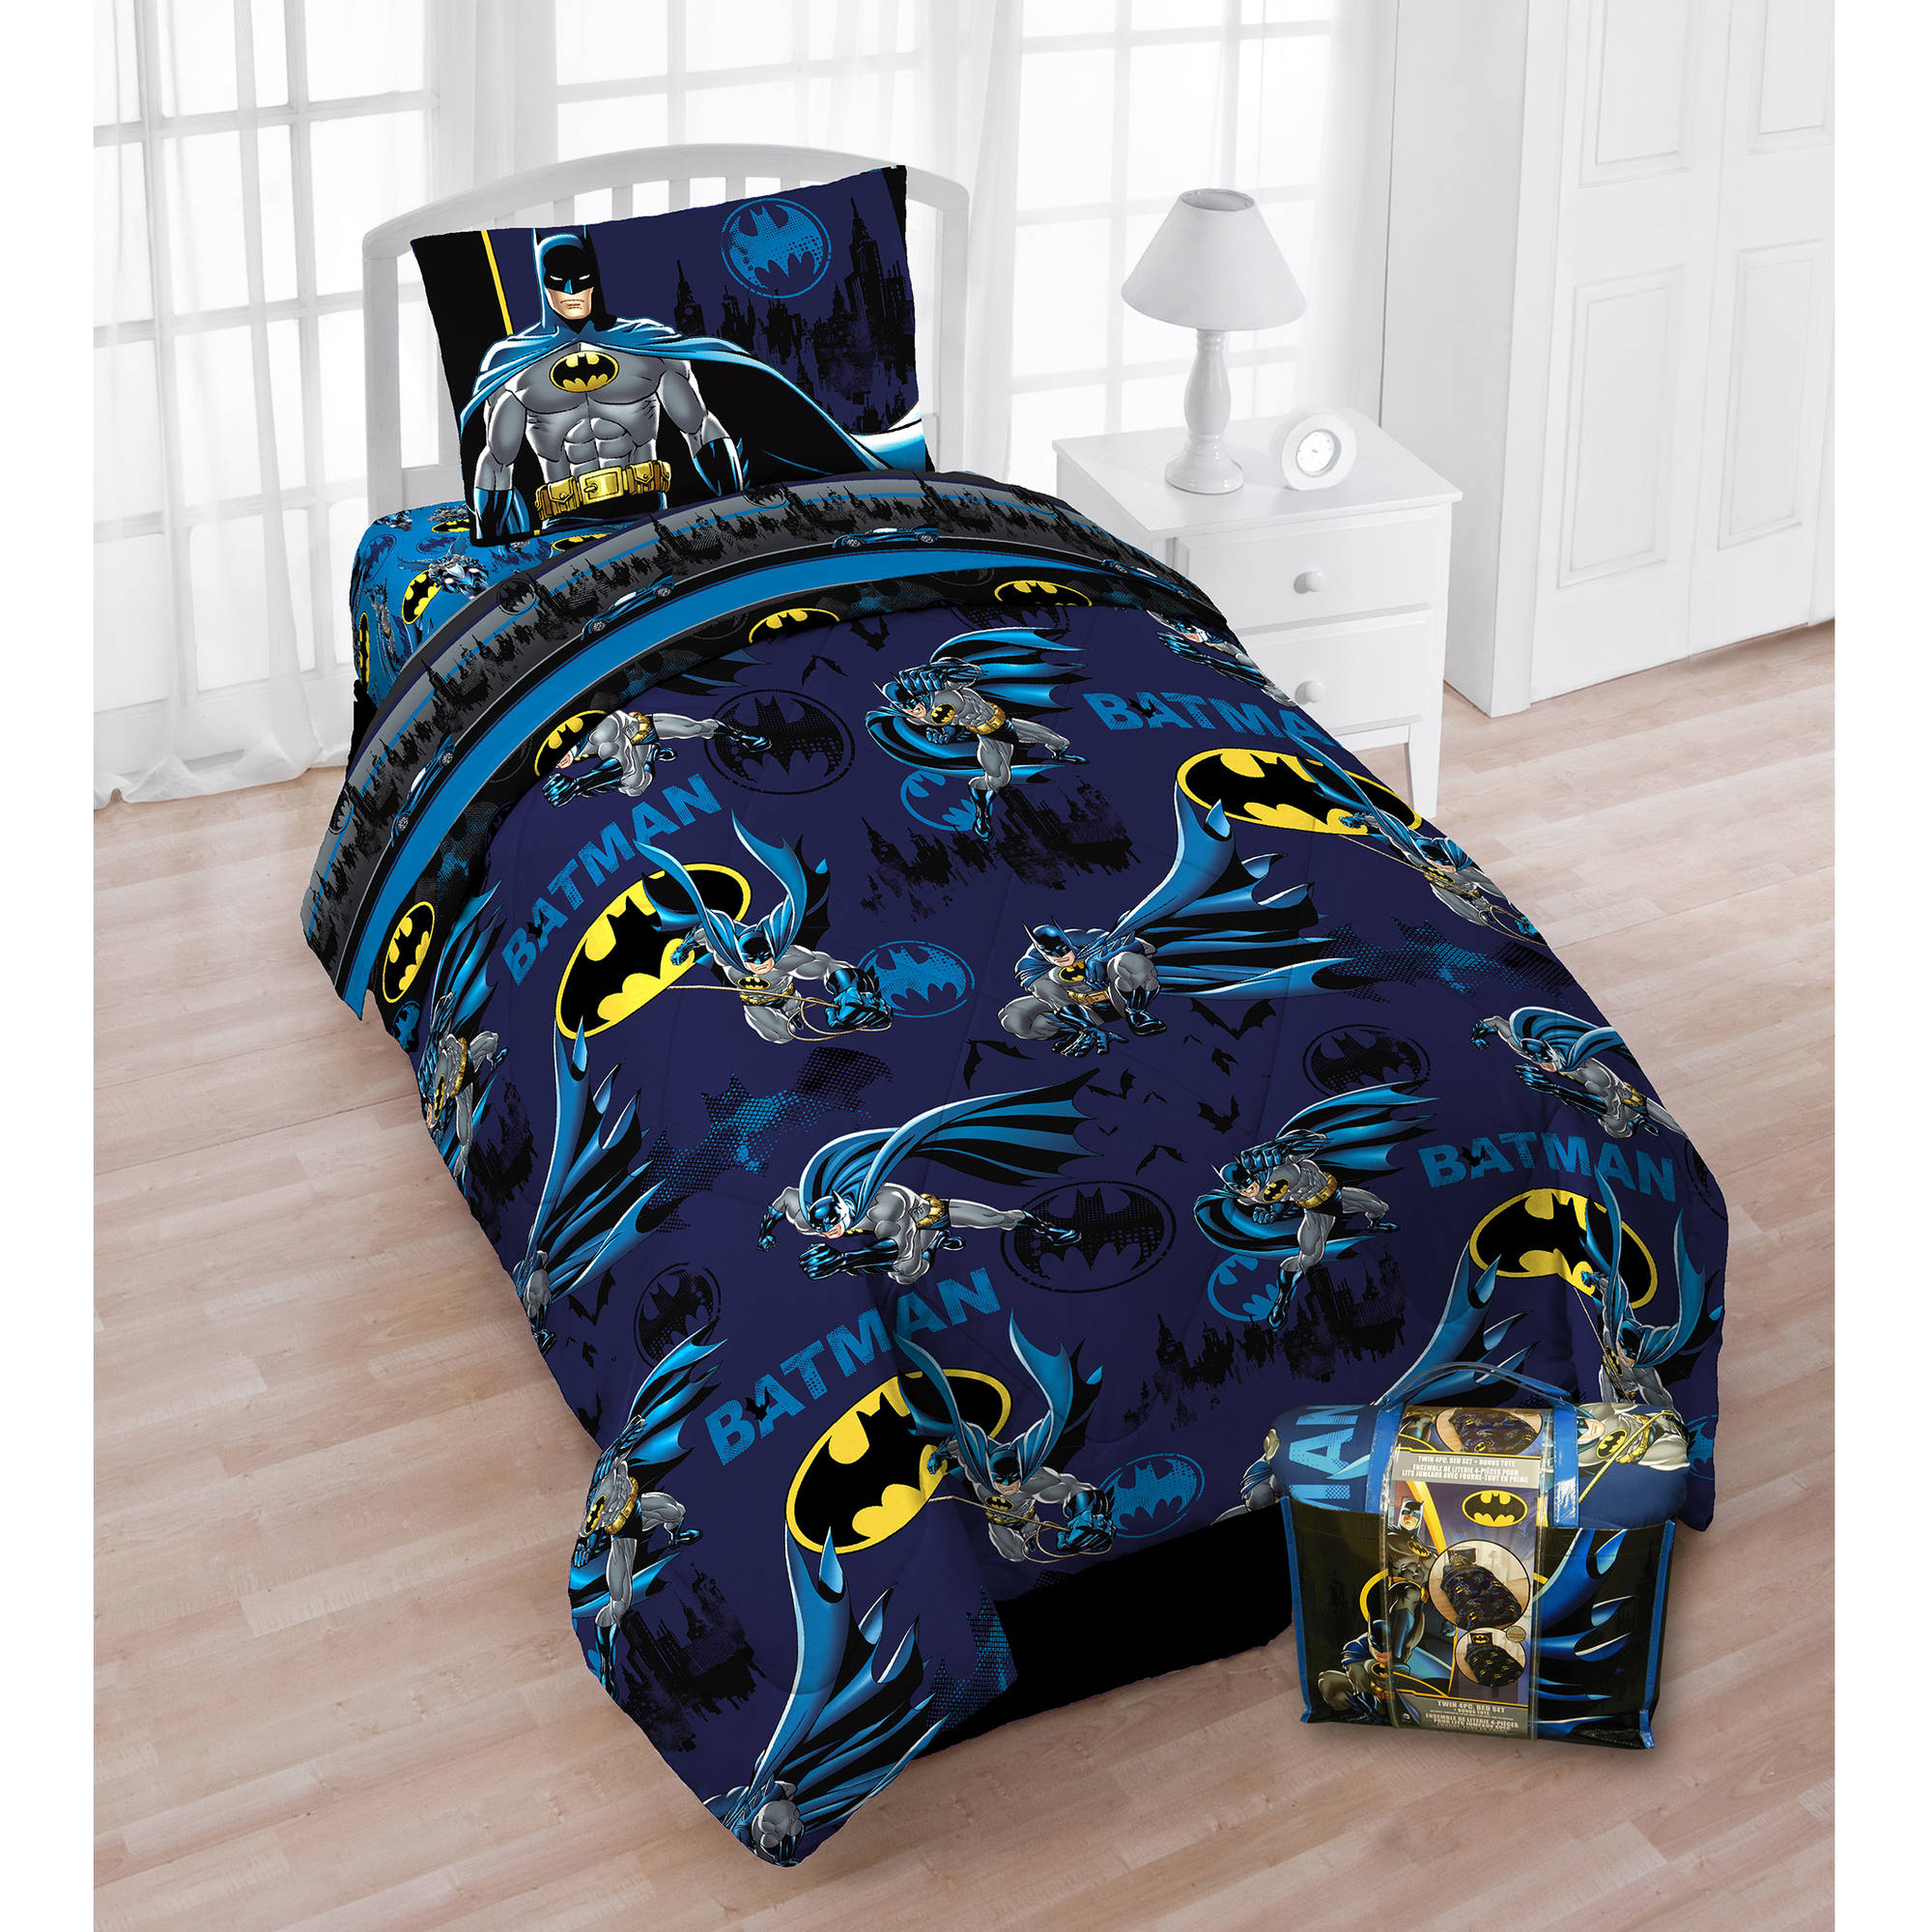 """Batman """"Protect Gotham"""" Bed in a Bag 5 Piece Twin Bedding Set with Bonus Tote"""